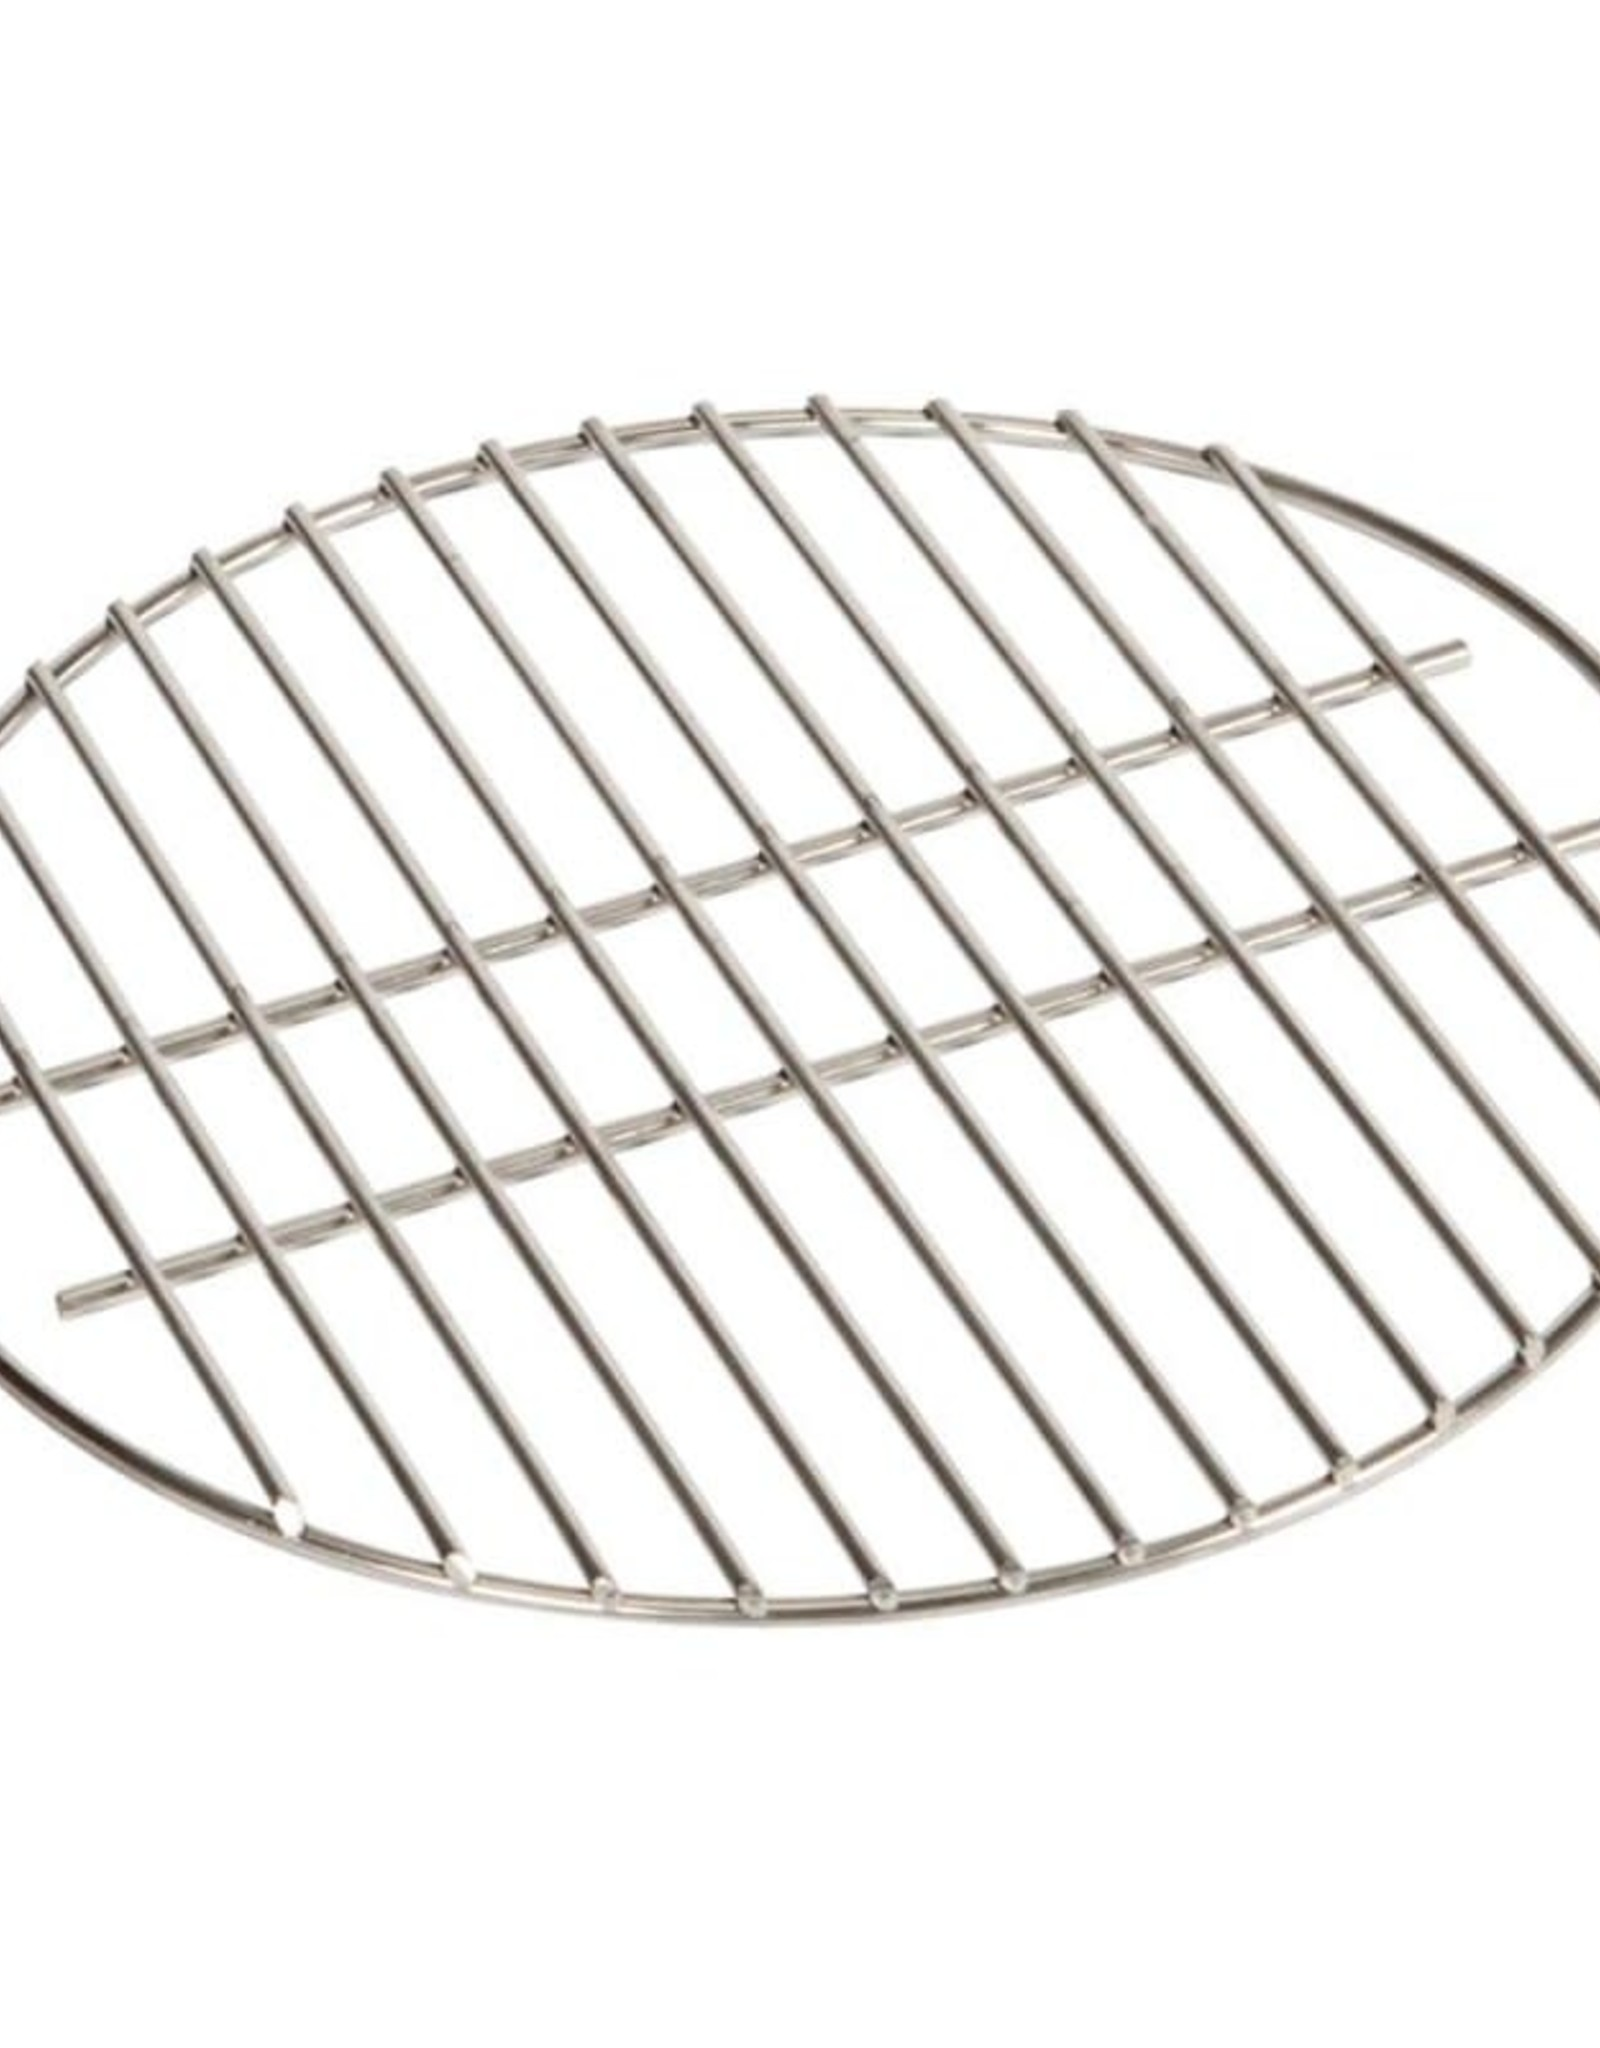 Big Green Egg Big Green Egg Stainless Steel Cooking Grid S MX